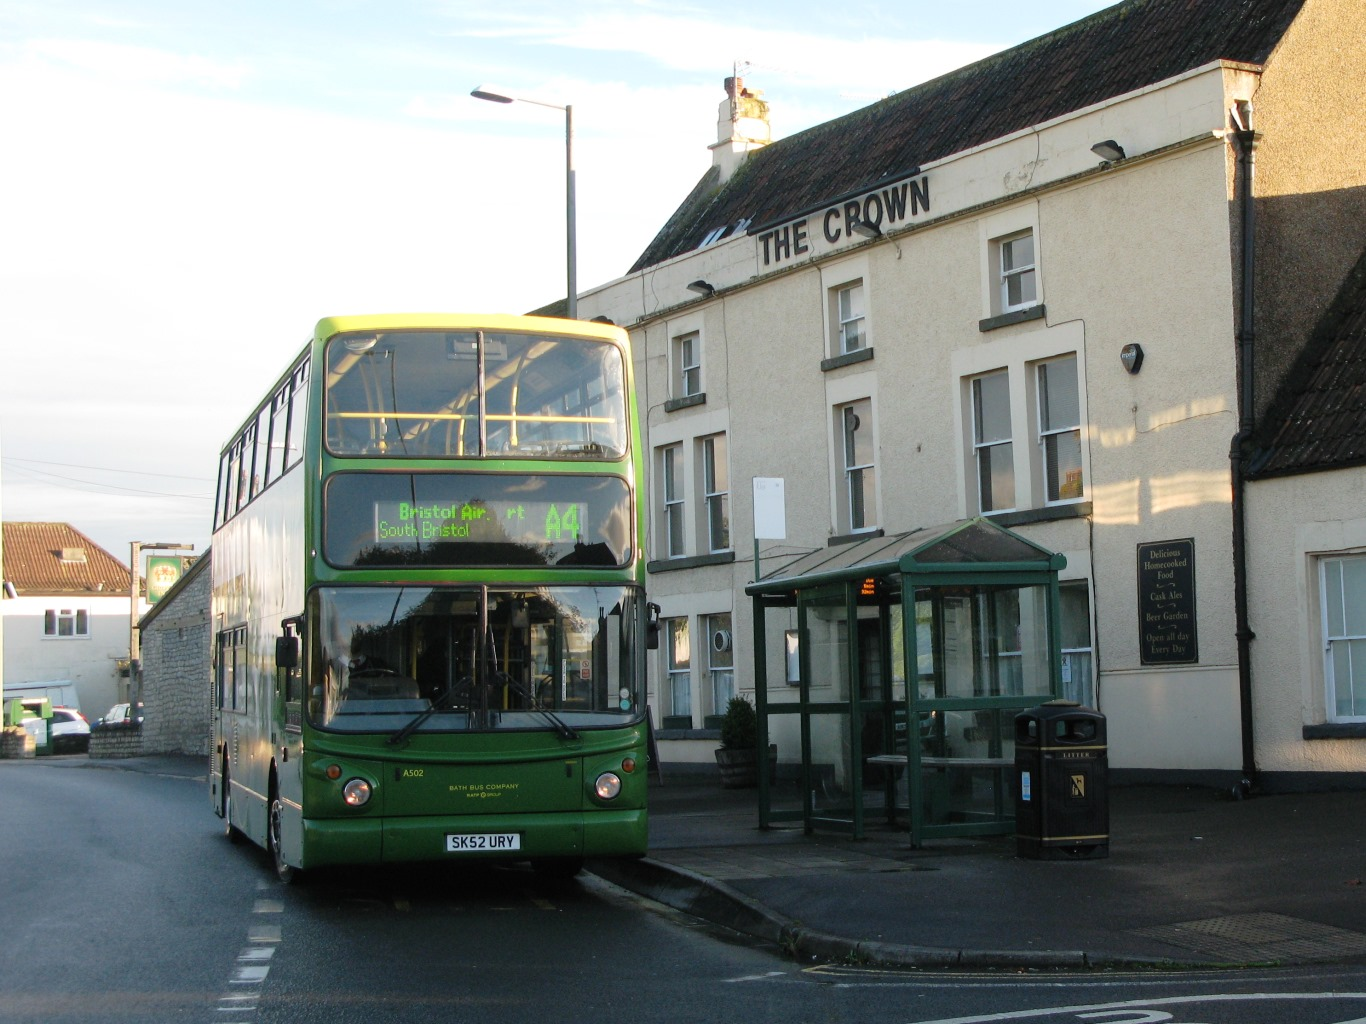 File:Saltford Crown - Bath Bus Company A502 (SK52URY) JPG